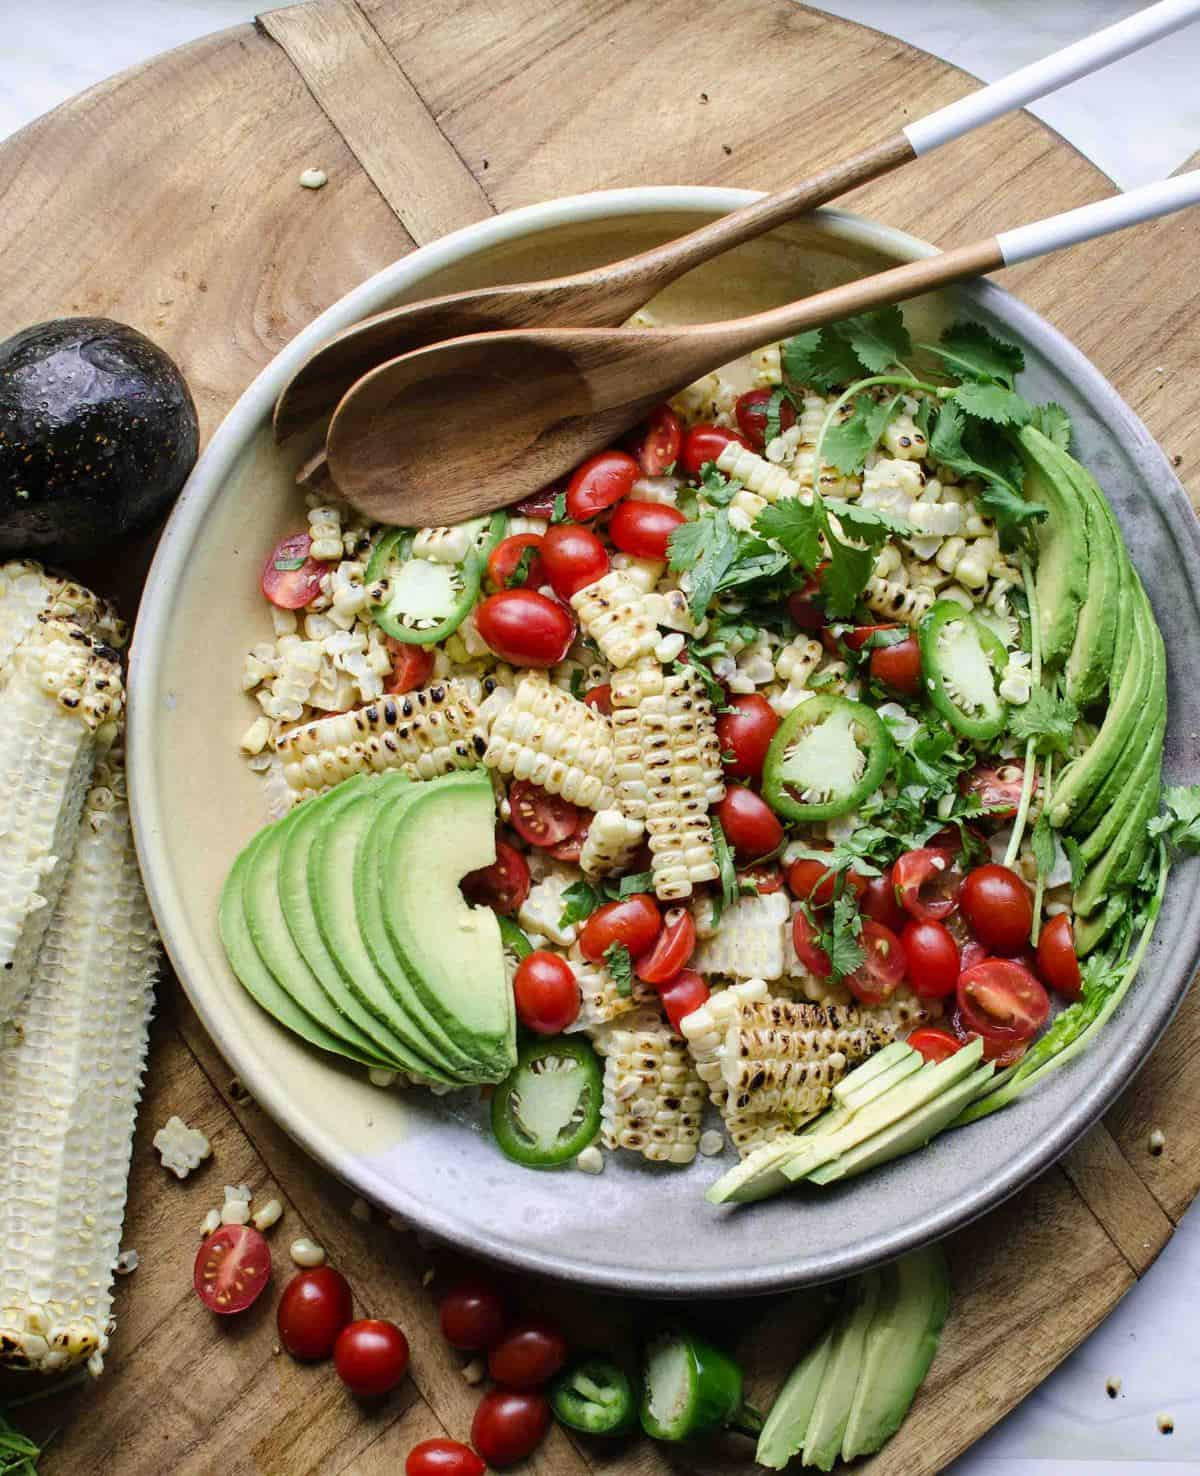 Grilled Corn & Avocado Salad is the perfect simple side to serve all summer long! It comes together in a snap, & is made of delicious seasonal ingredients.